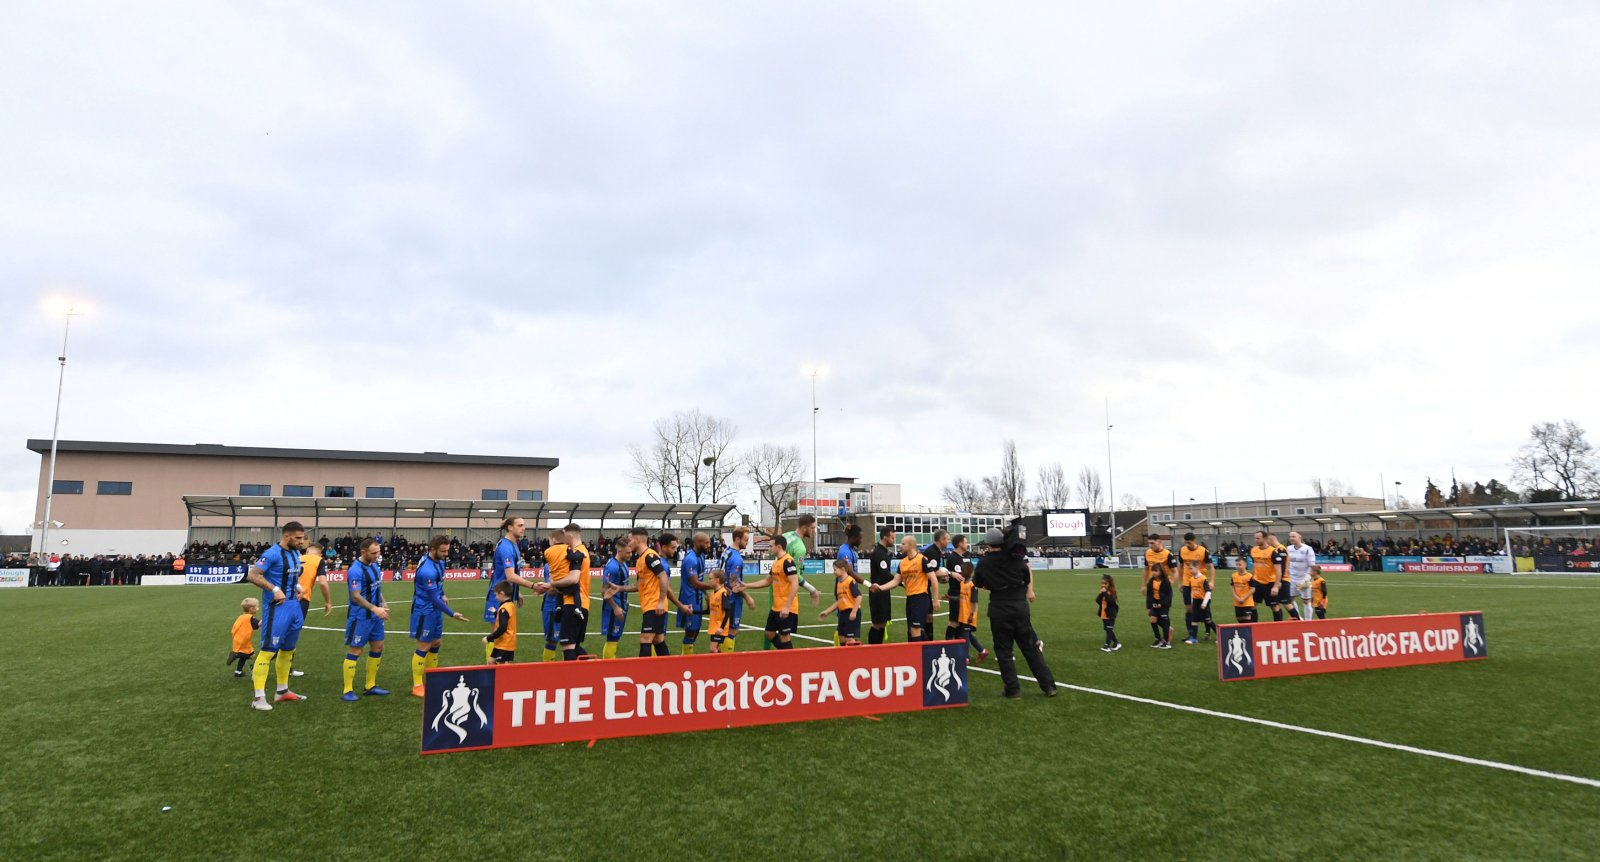 Slough v Gillingham in the FA Cup